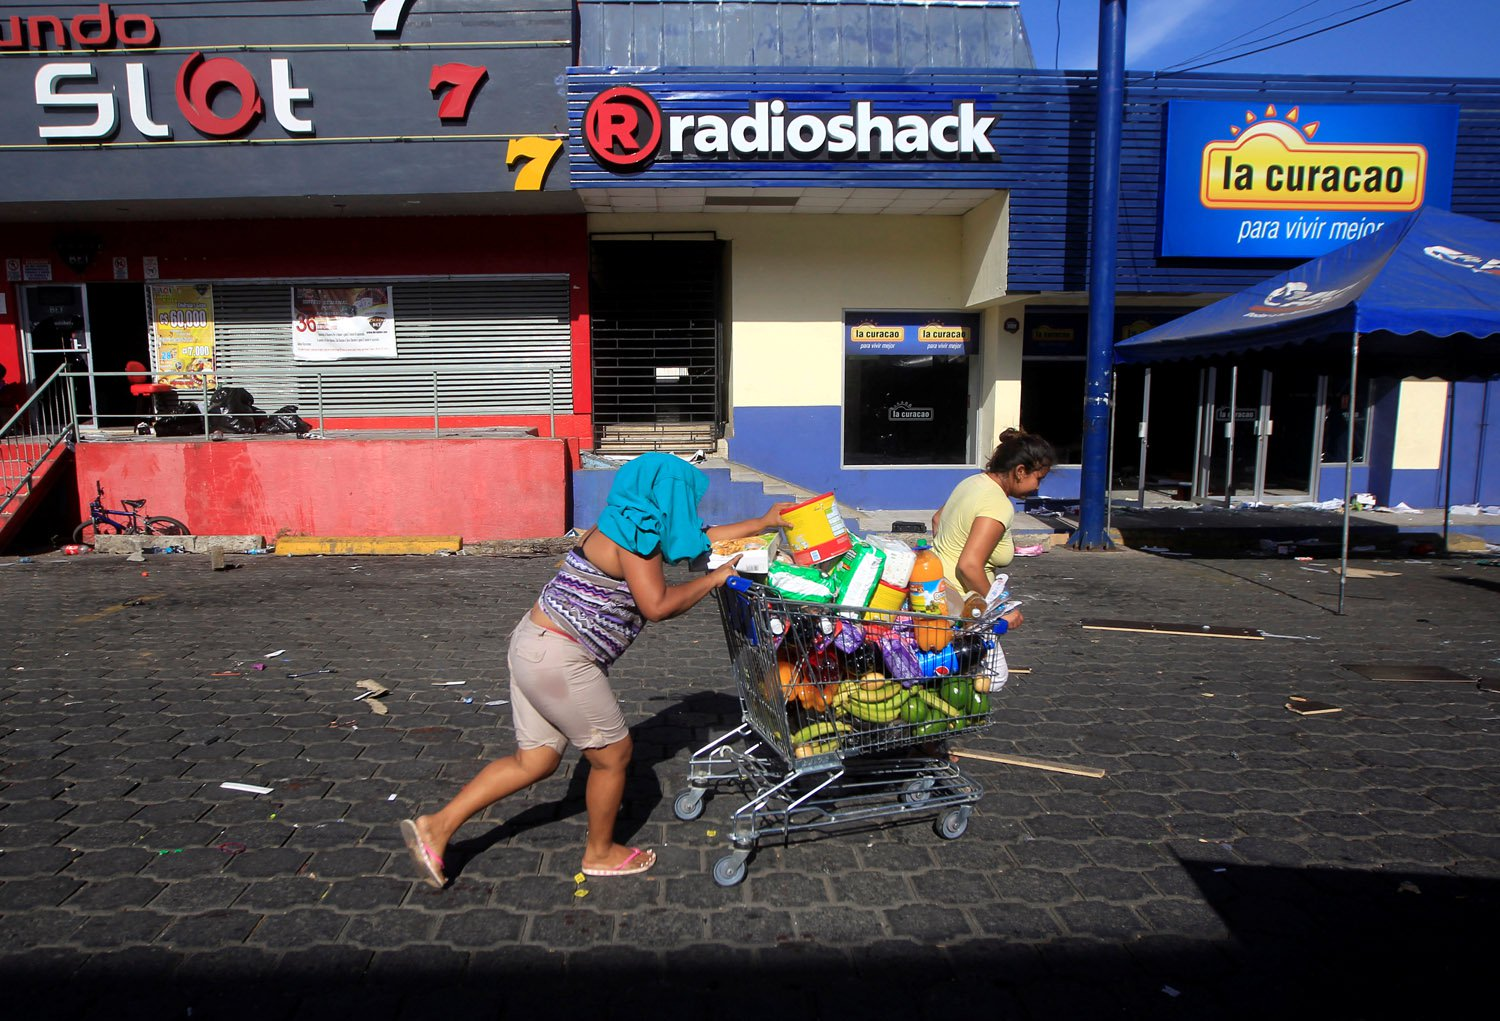 A woman with goods looted from a store walks pushing a shopping trolley along a street after protests over a reform to the pension plans of the Nicaraguan Social Security Institute (INSS) in Managua, Nicaragua April 22, 2018. REUTERS/Jorge Cabrera